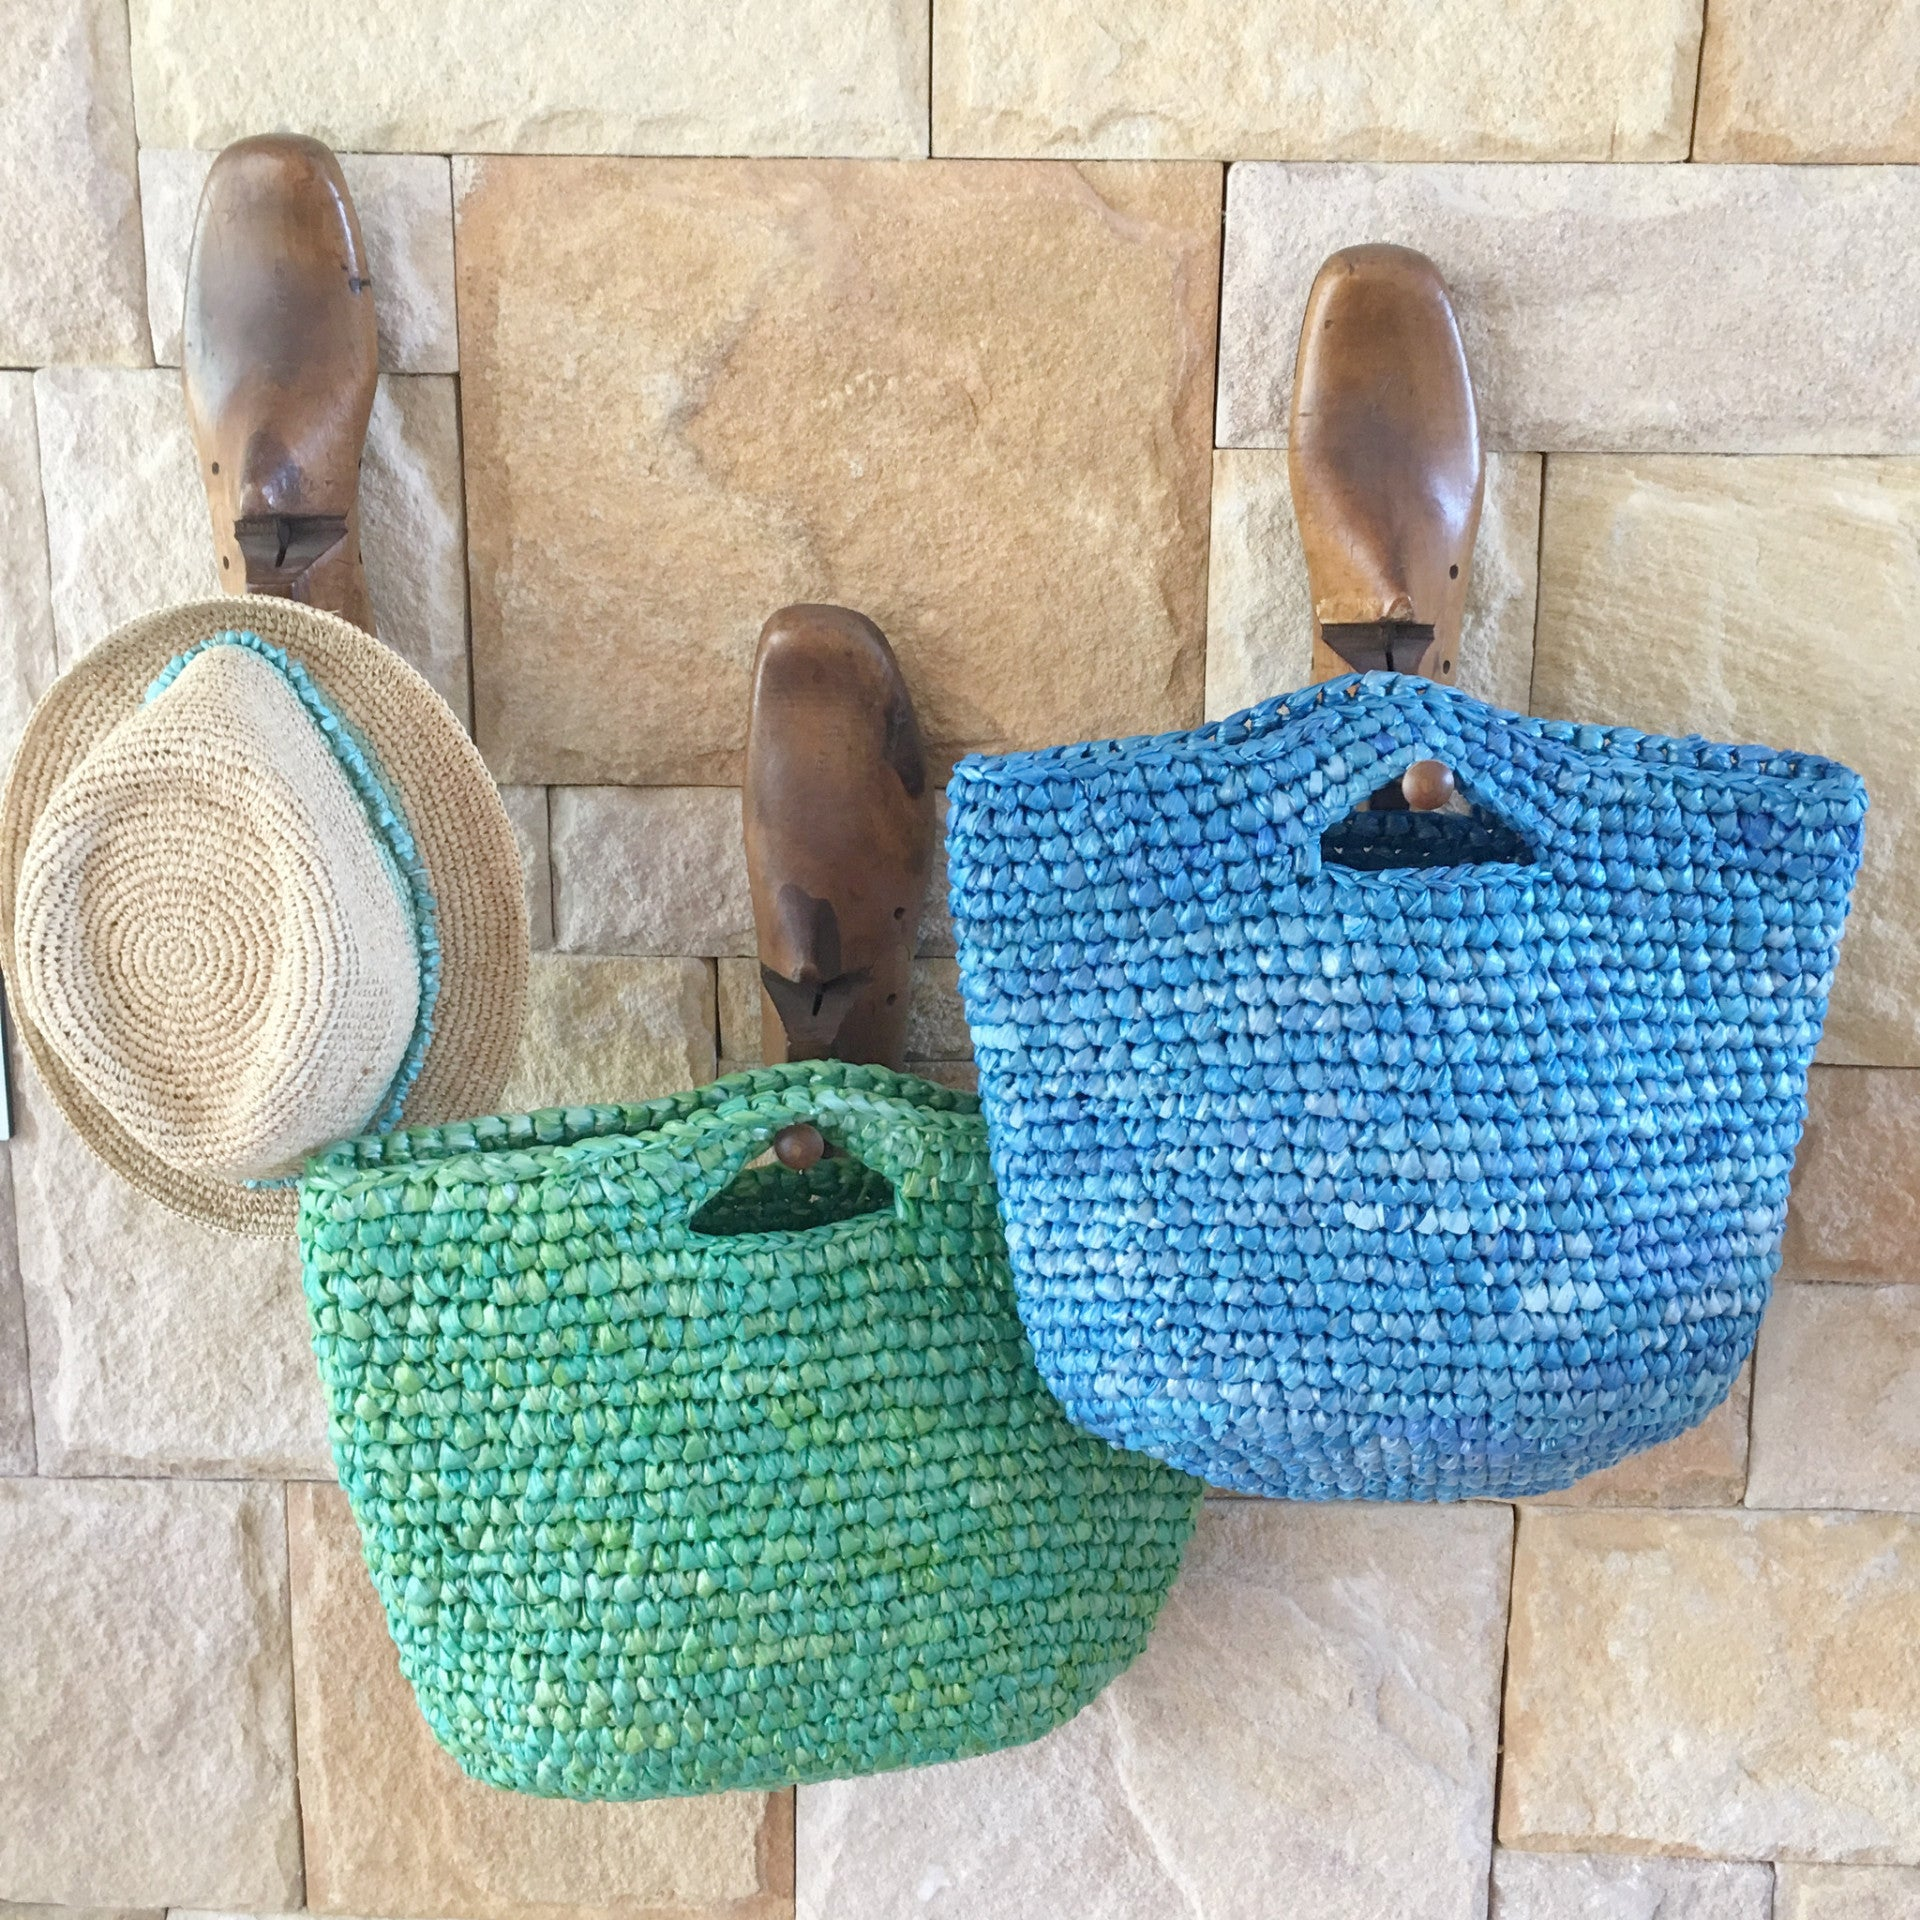 Carry Bag Made From Plastic Bags